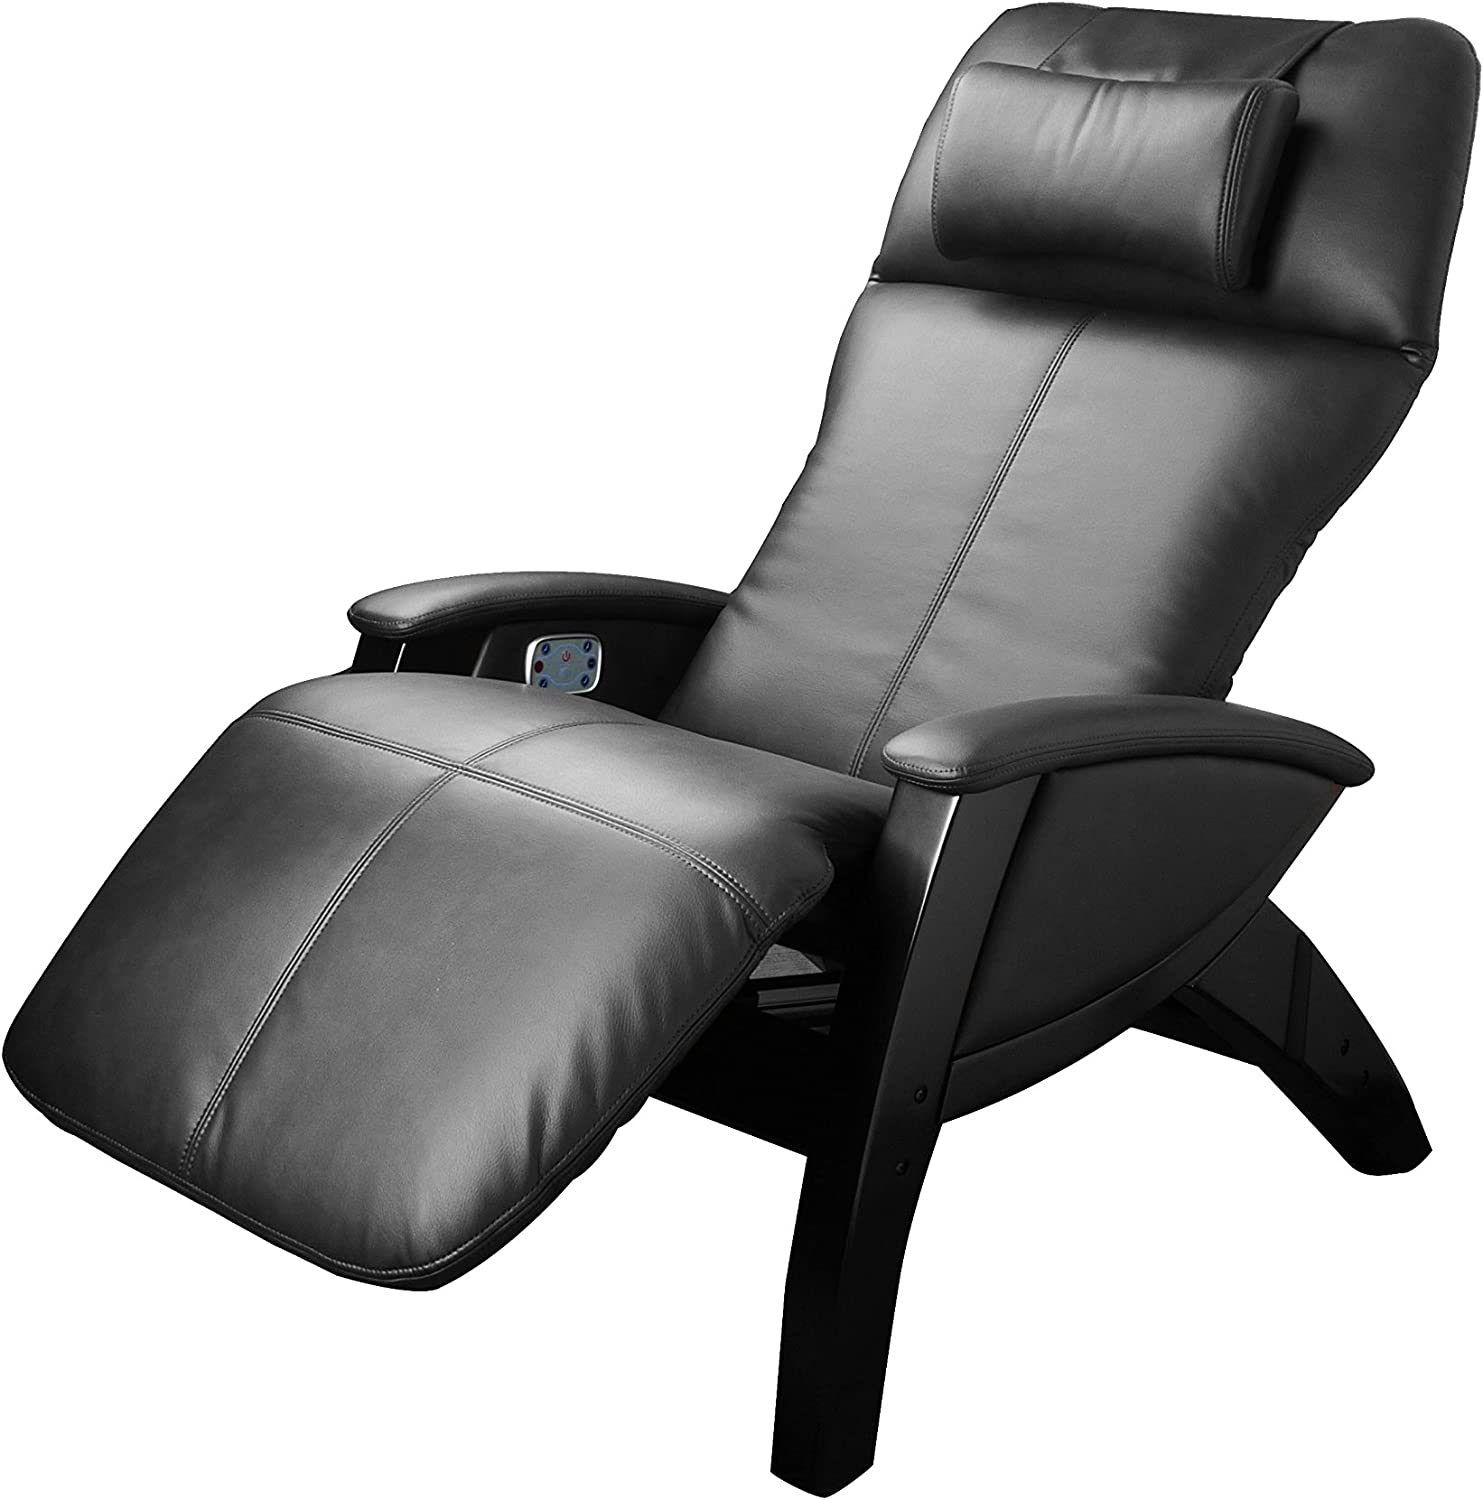 Cozzia Dual Power Zero Gravity Recliner, Black